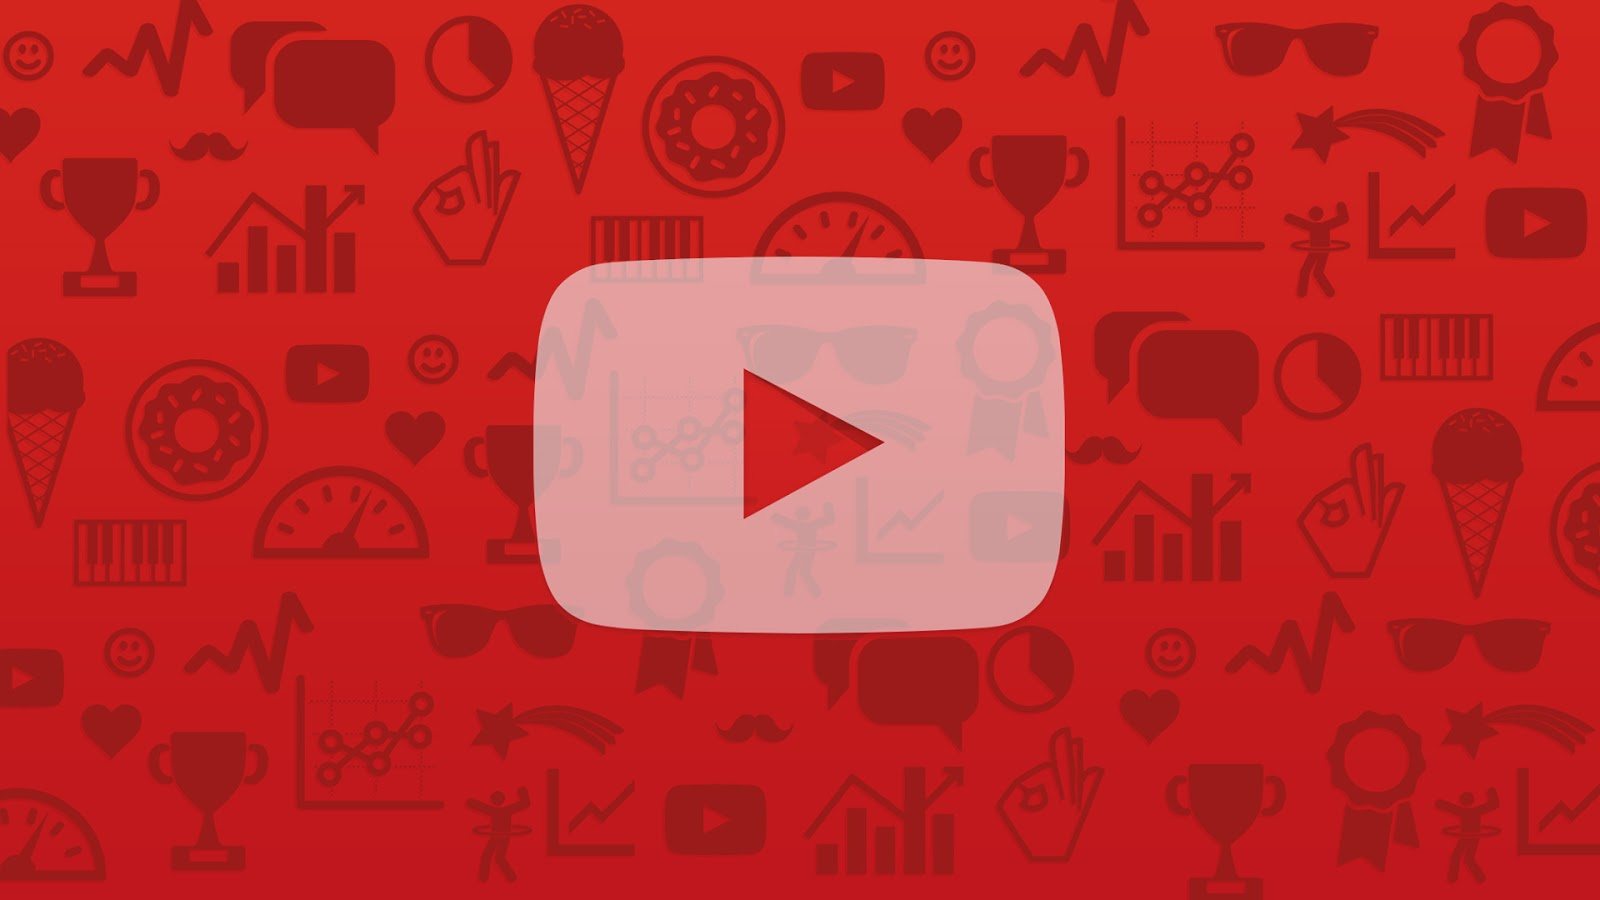 THE MOST FAVORITE YOUTUBE CHANNEL